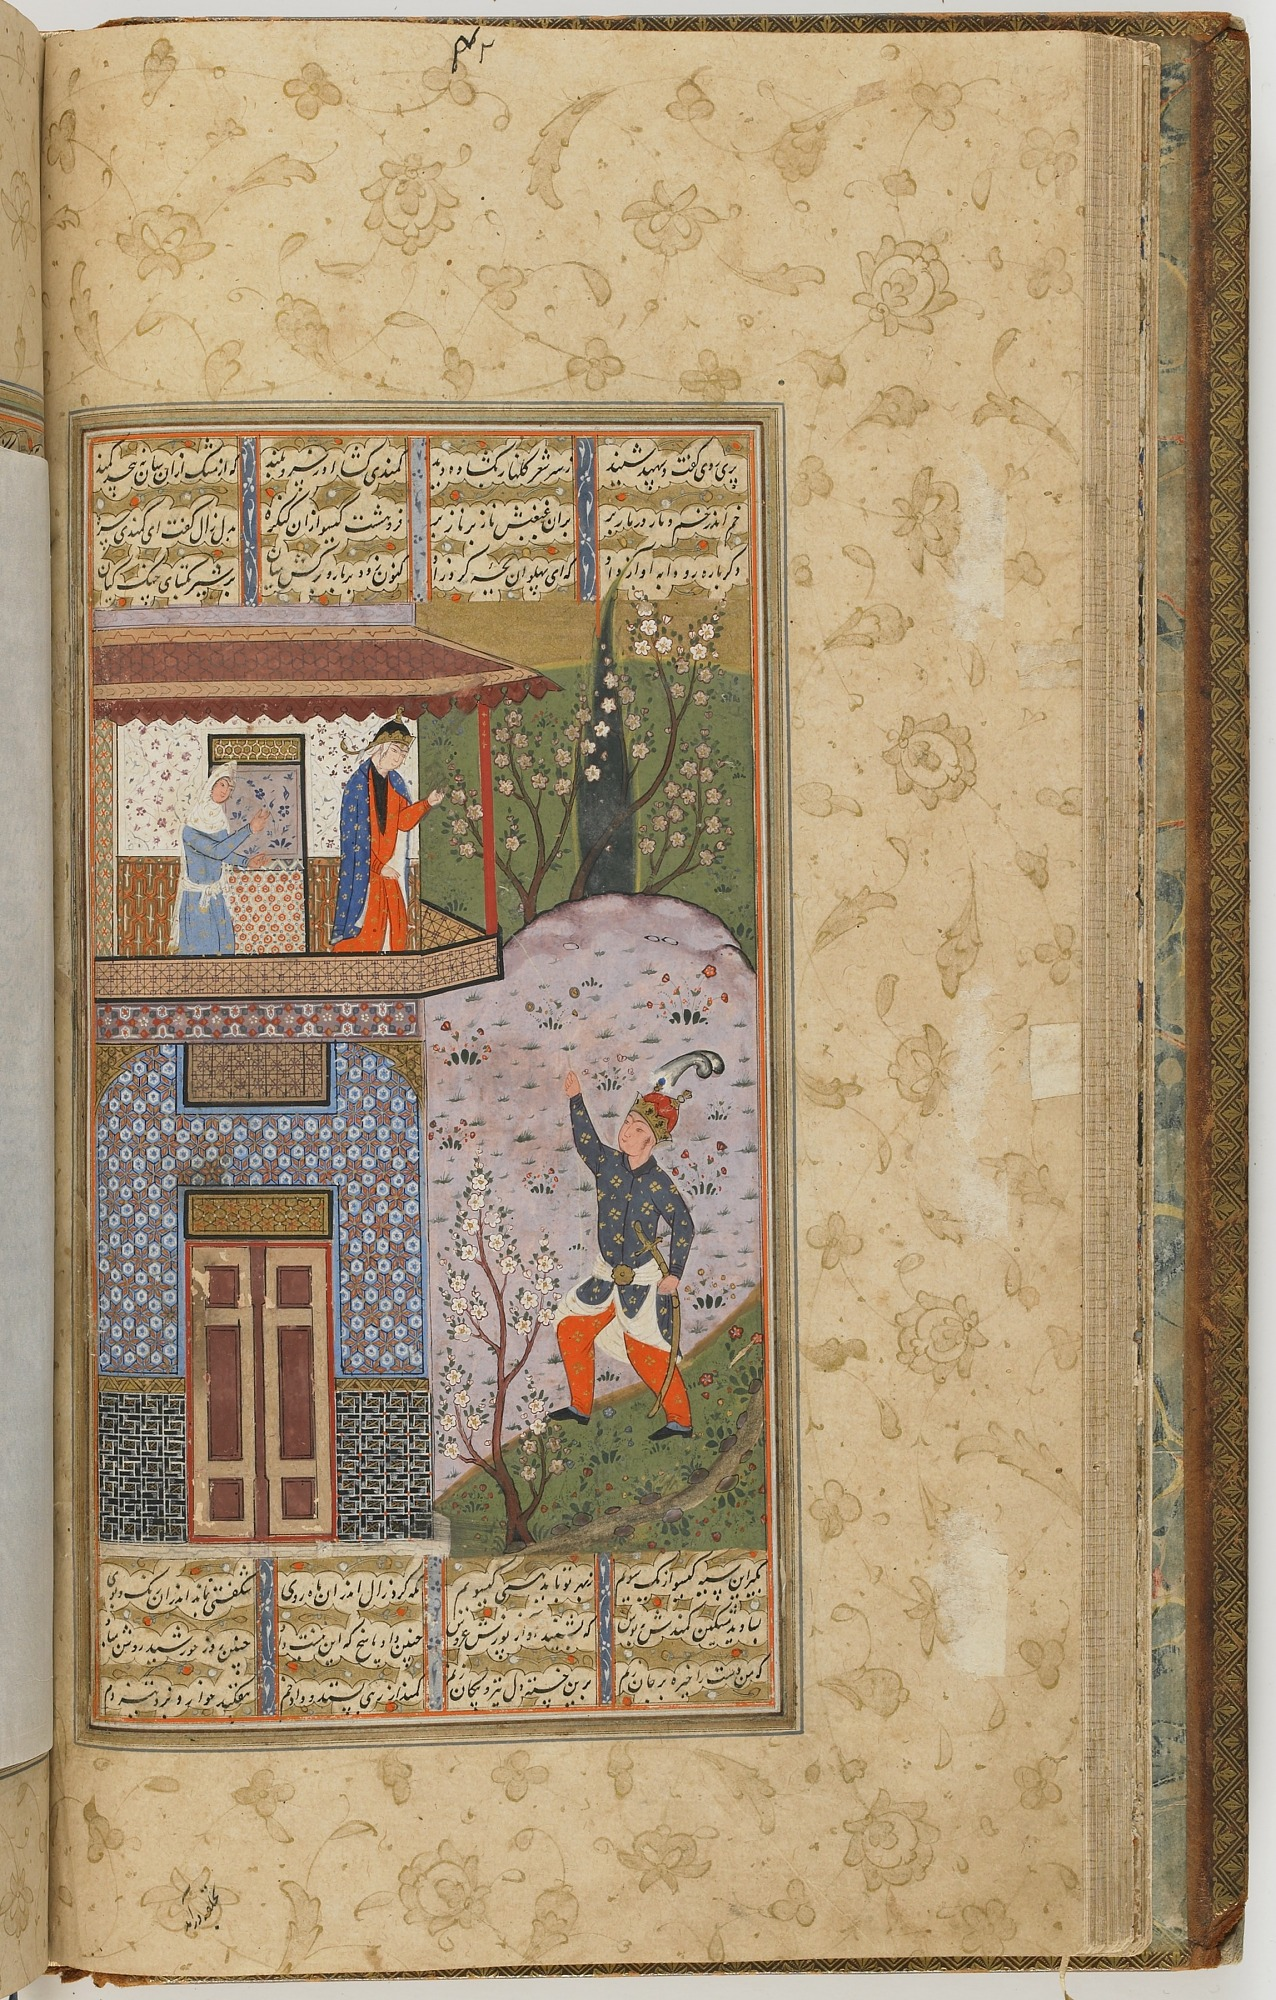 folio 41 verso: The Shahnama (Book of kings) by Firdausi (d. 1020)